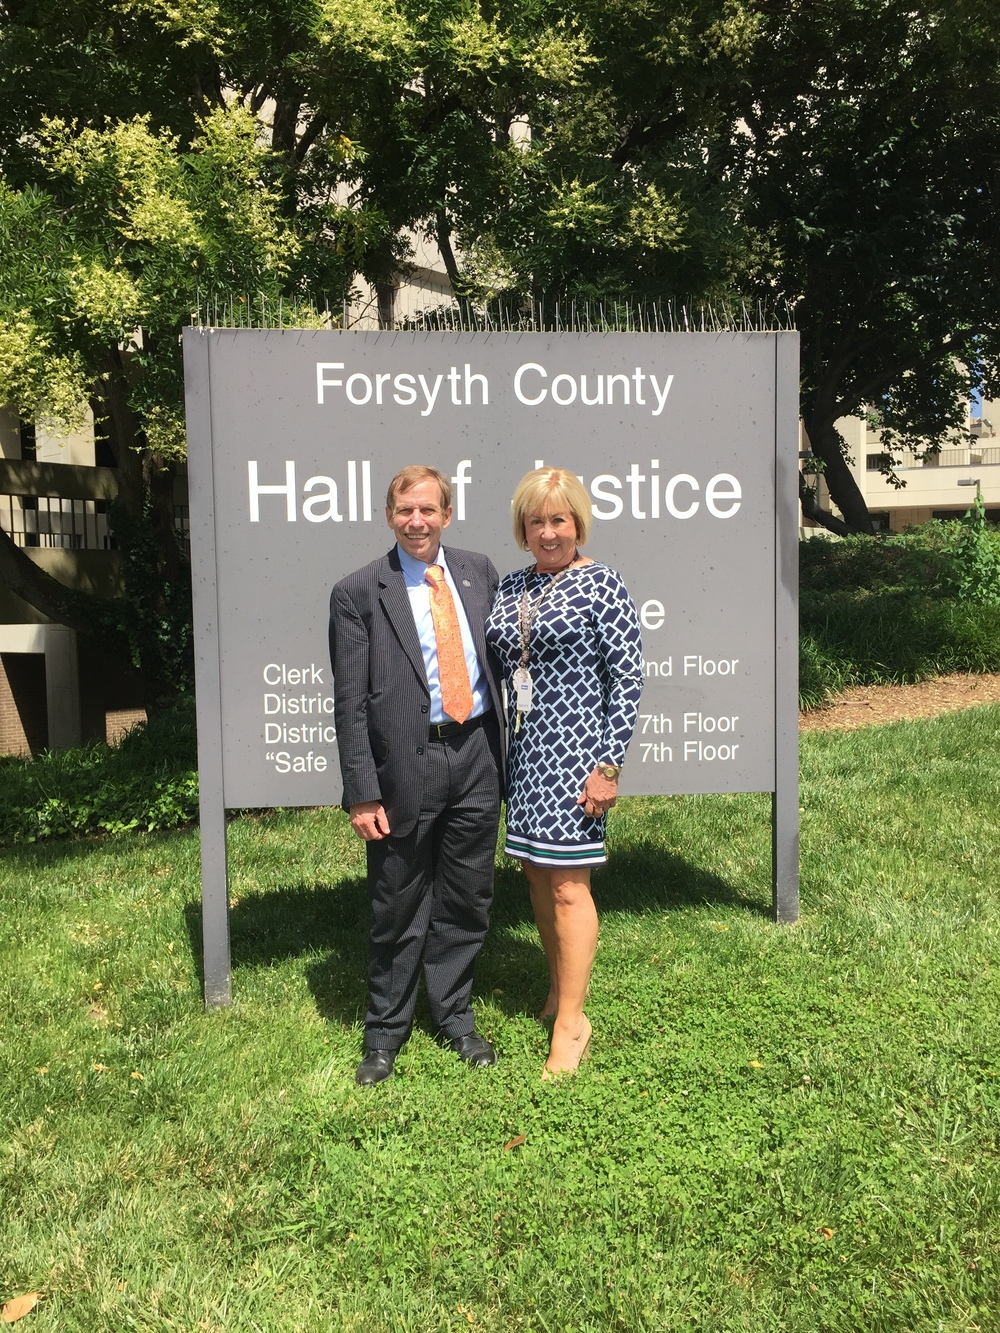 At Forsyth County courthouse with Clerk of Court Susan Frye, July 13, 2016.